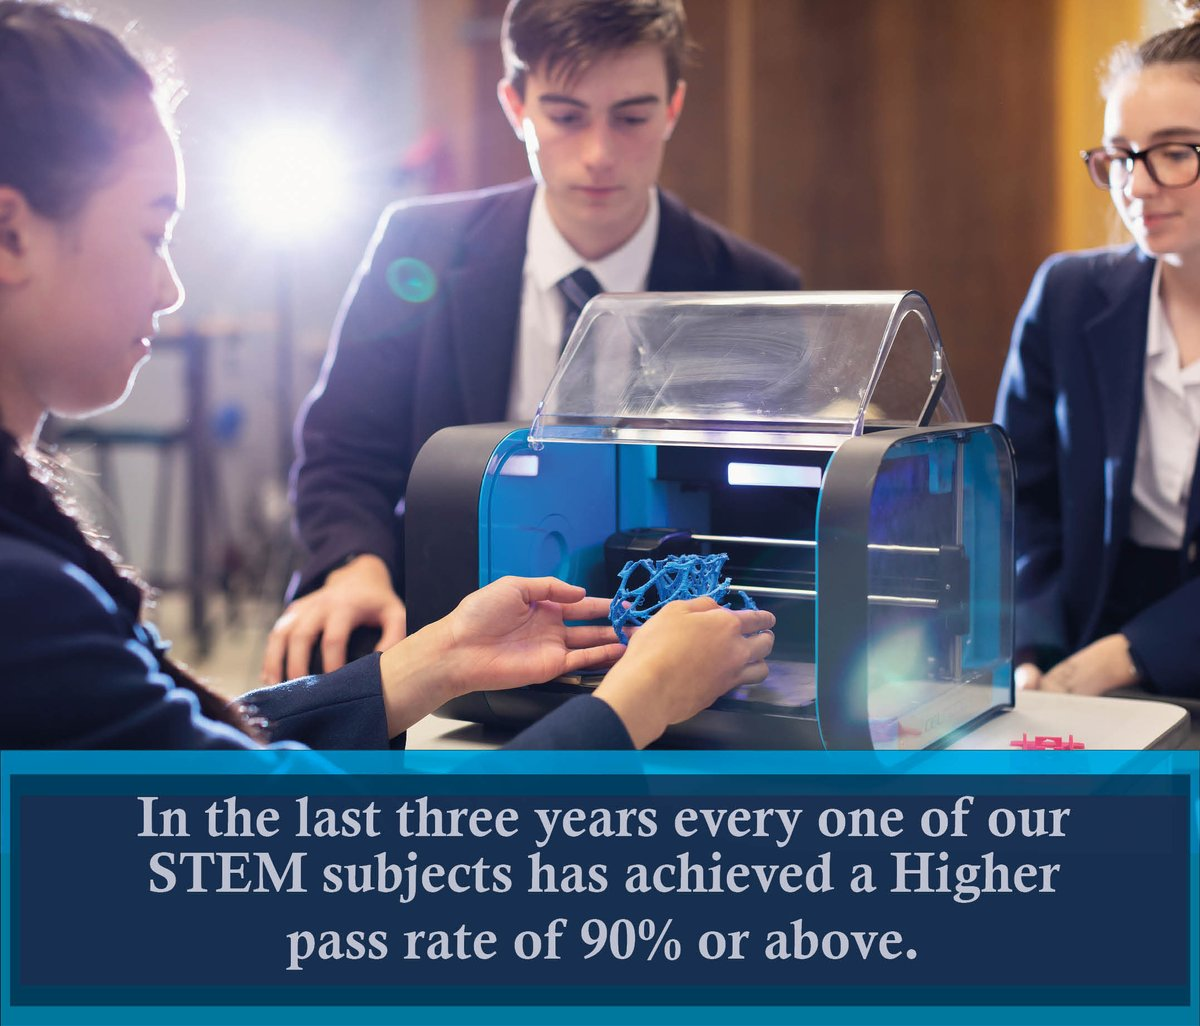 Our pupils excel in STEM subjects - come along and see for yourself  why Hutchie is the right choice for your child. #Belong #Flourish #Achieve https://t.co/RaeJ1788rx